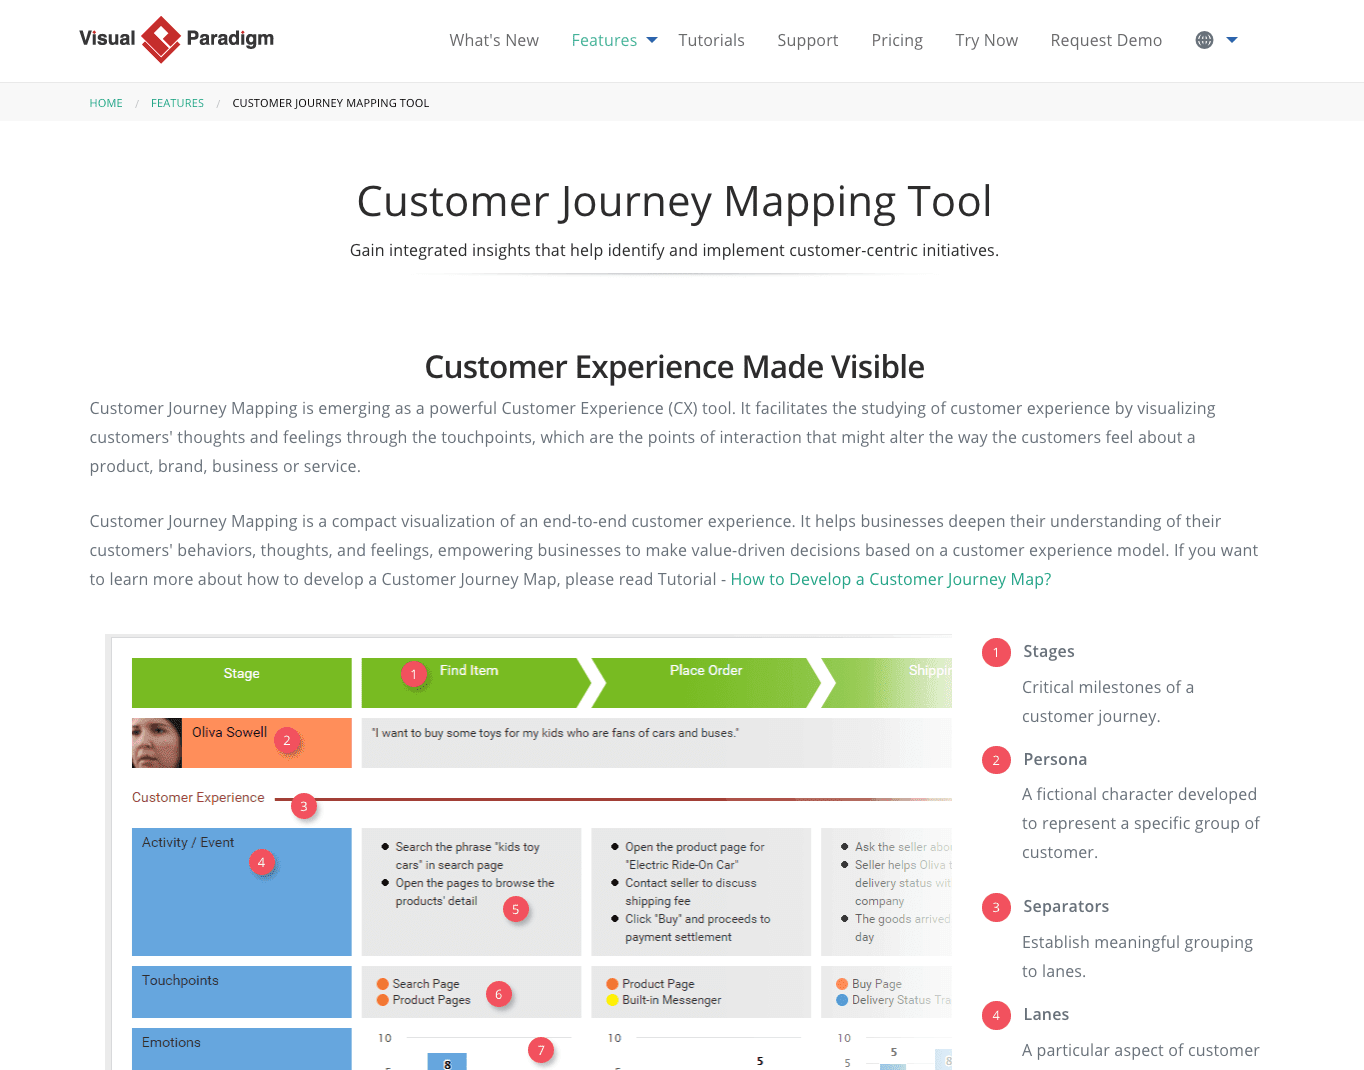 Dedicated Customer Journey Mapping Tools: Visual Paradigm